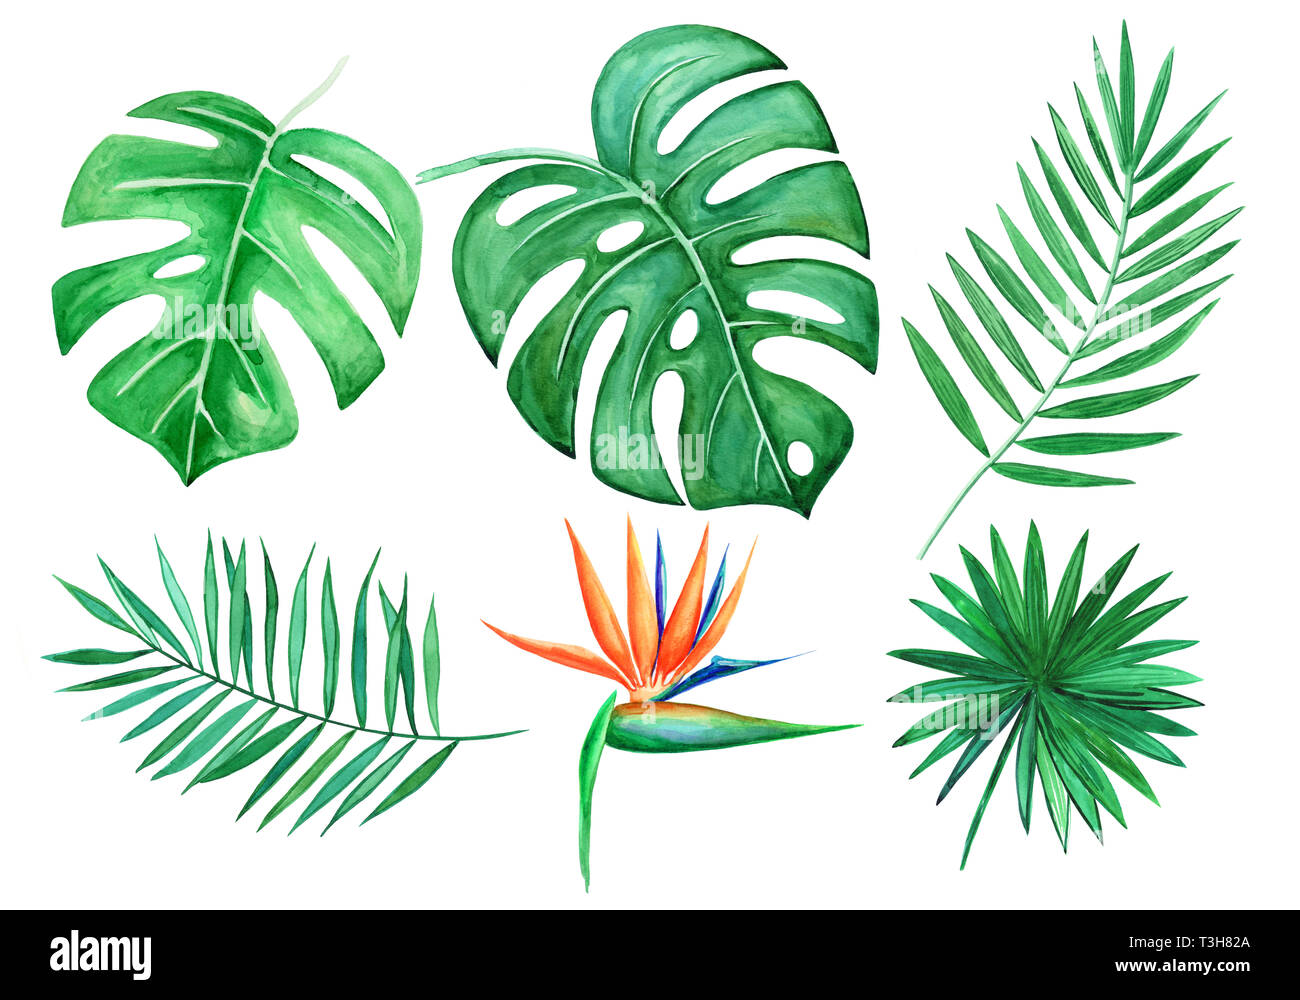 Tropical Leaves High Resolution Stock Photography And Images Alamy See more ideas about tropical, tropical leaves, leaves. https www alamy com watercolor set of tropical leaves isolated elements on white background hand drawn illustration monstera leaf strelitzia palm leaf image243168642 html